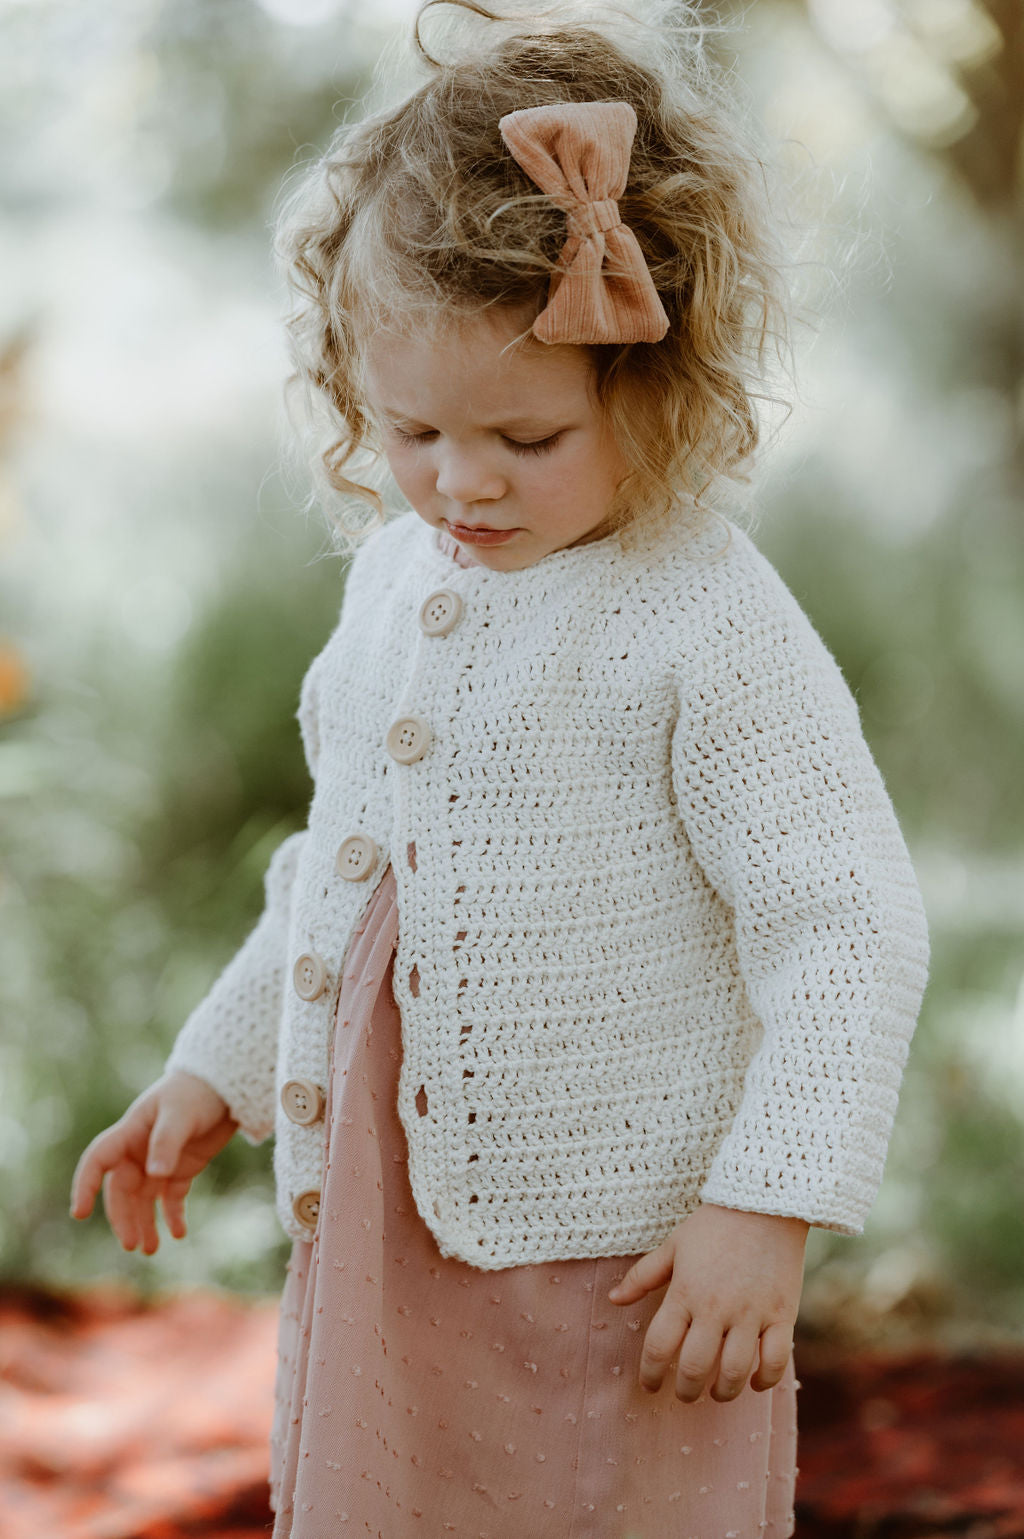 Cotton crocheted cardi